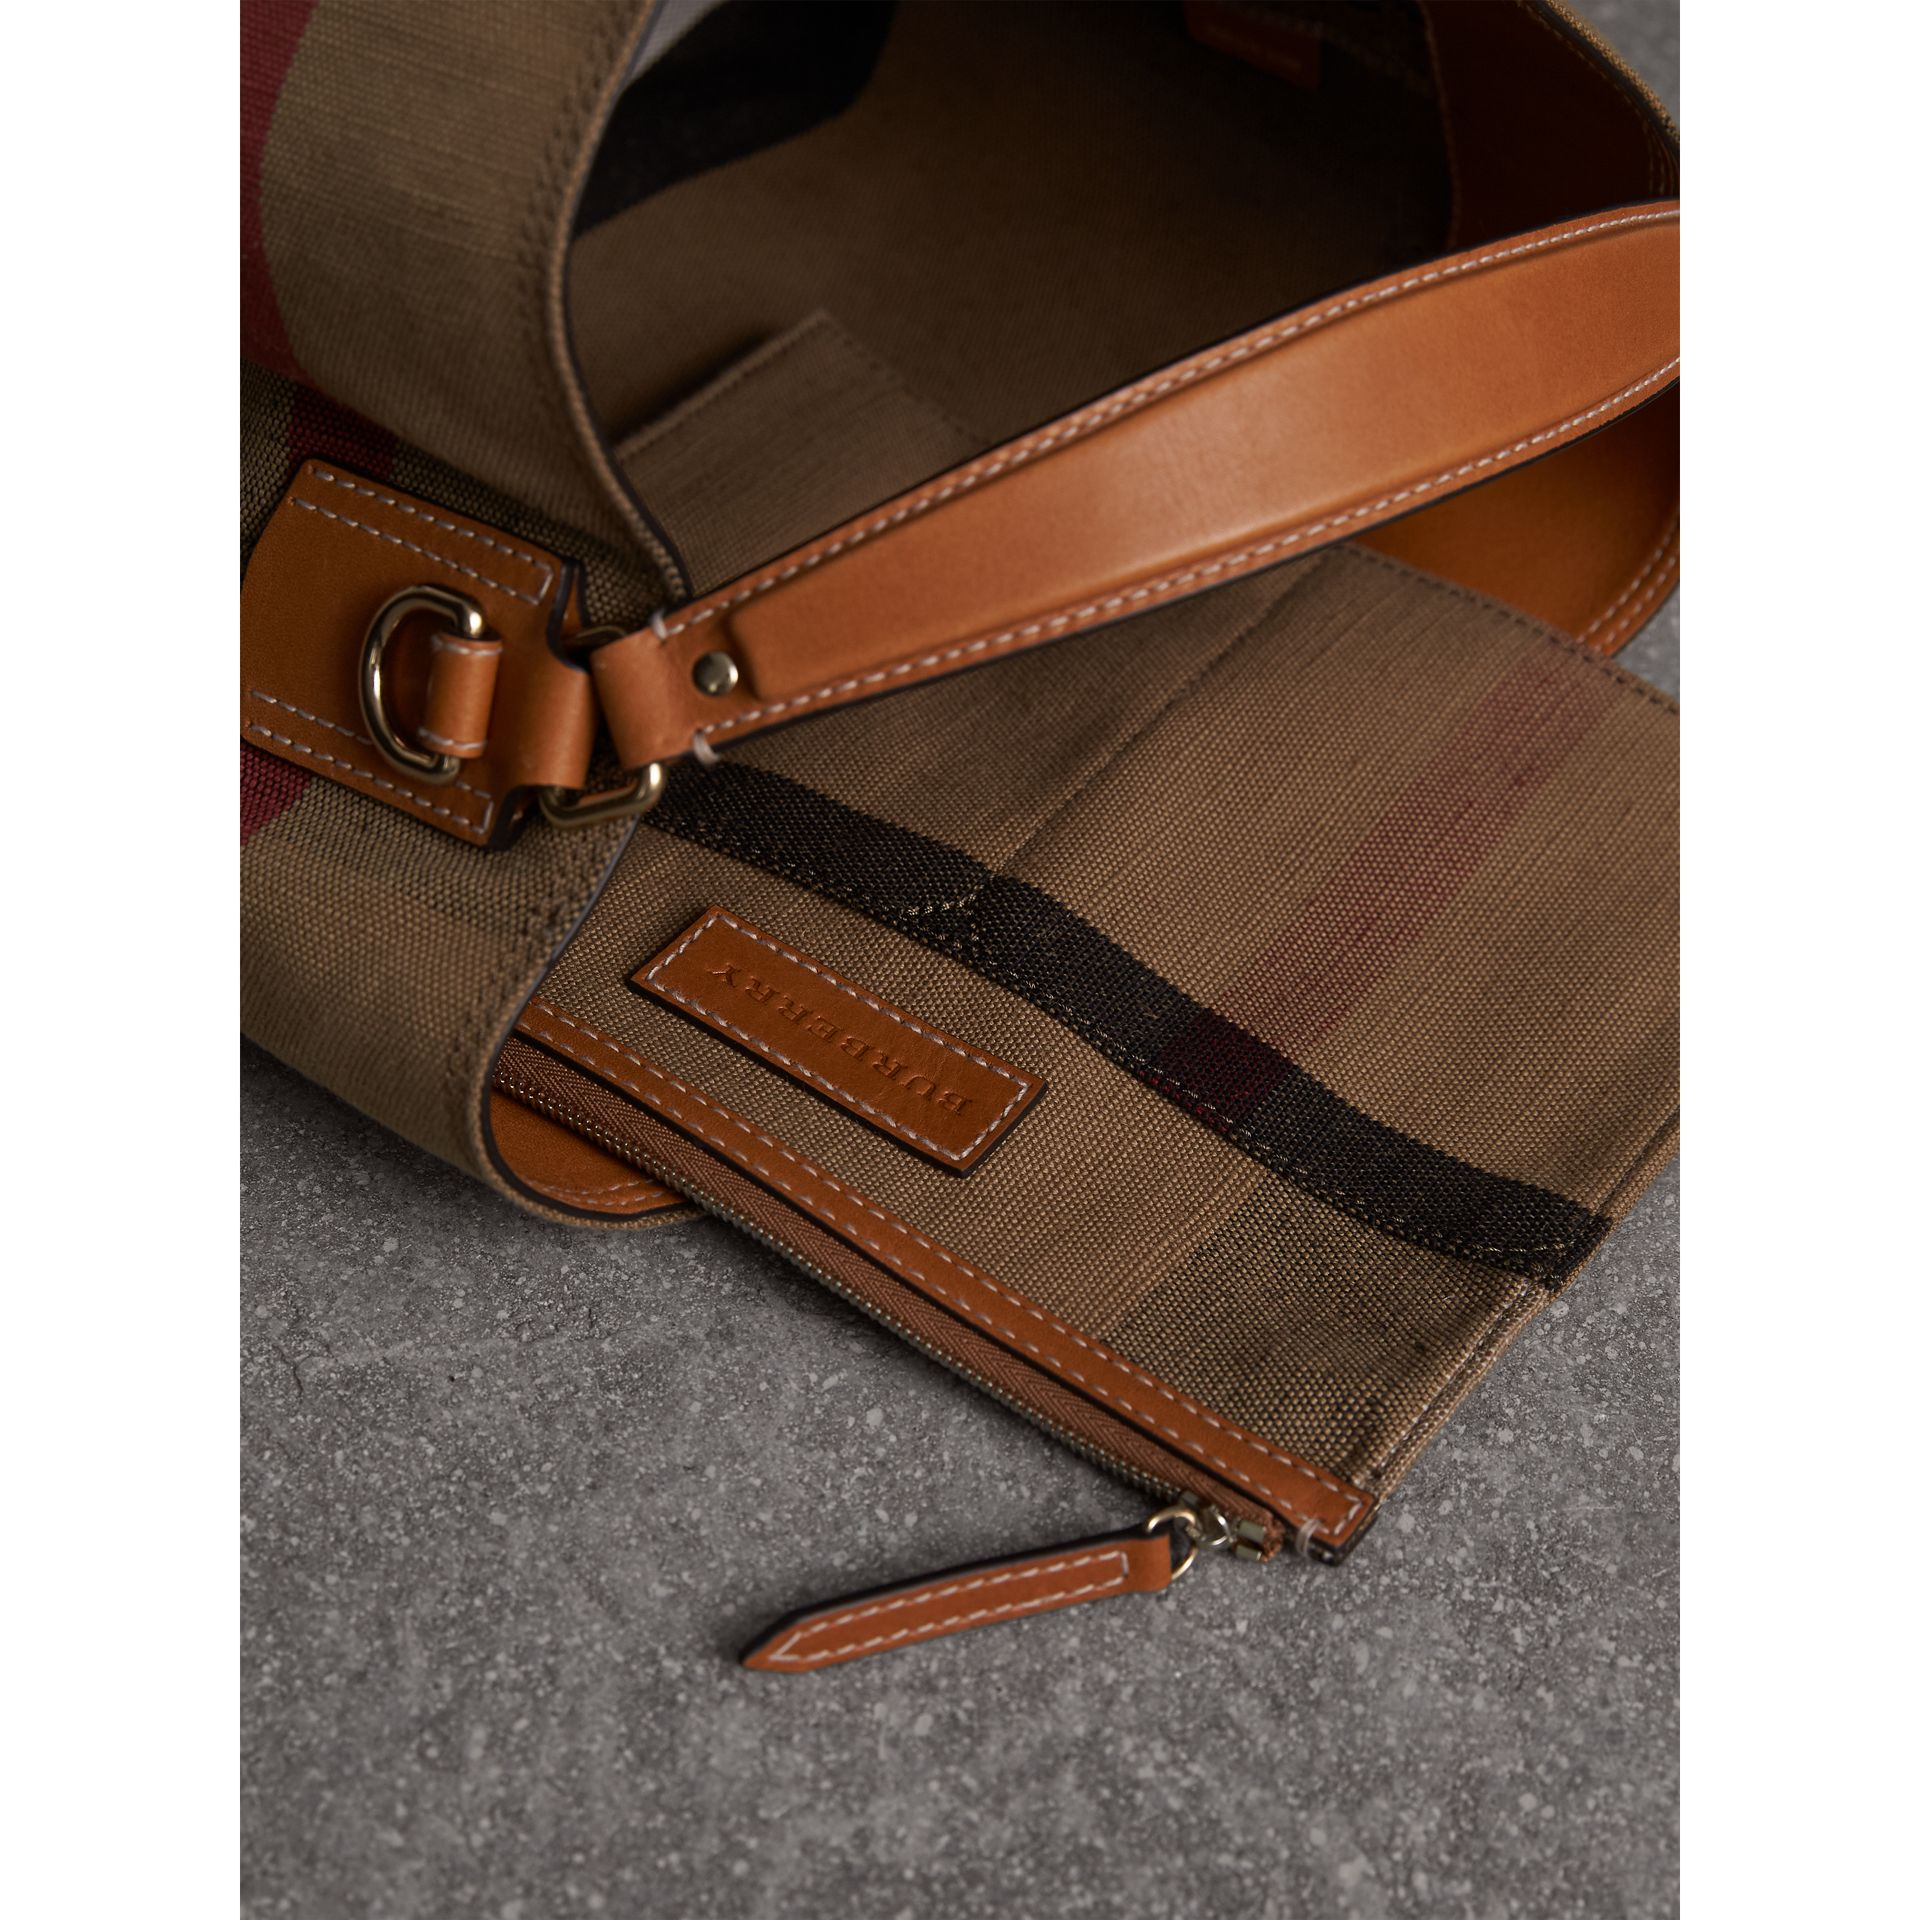 Medium Canvas Check Hobo Bag in Saddle Brown - Women | Burberry - gallery image 6